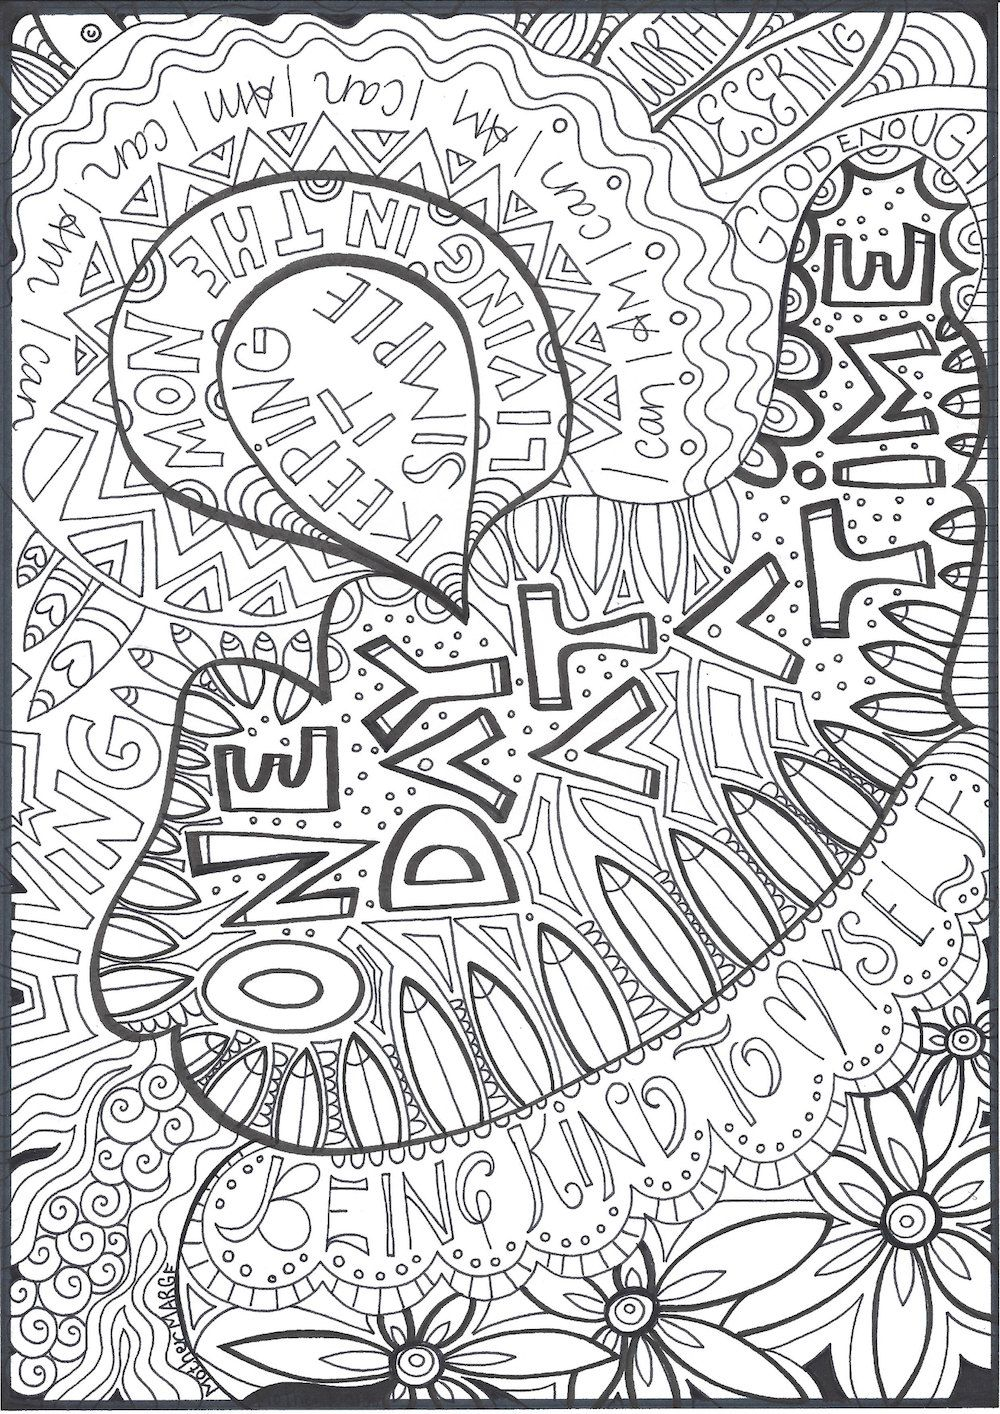 Mary Engelbreit Coloring Pages Printable   Free Coloring ...